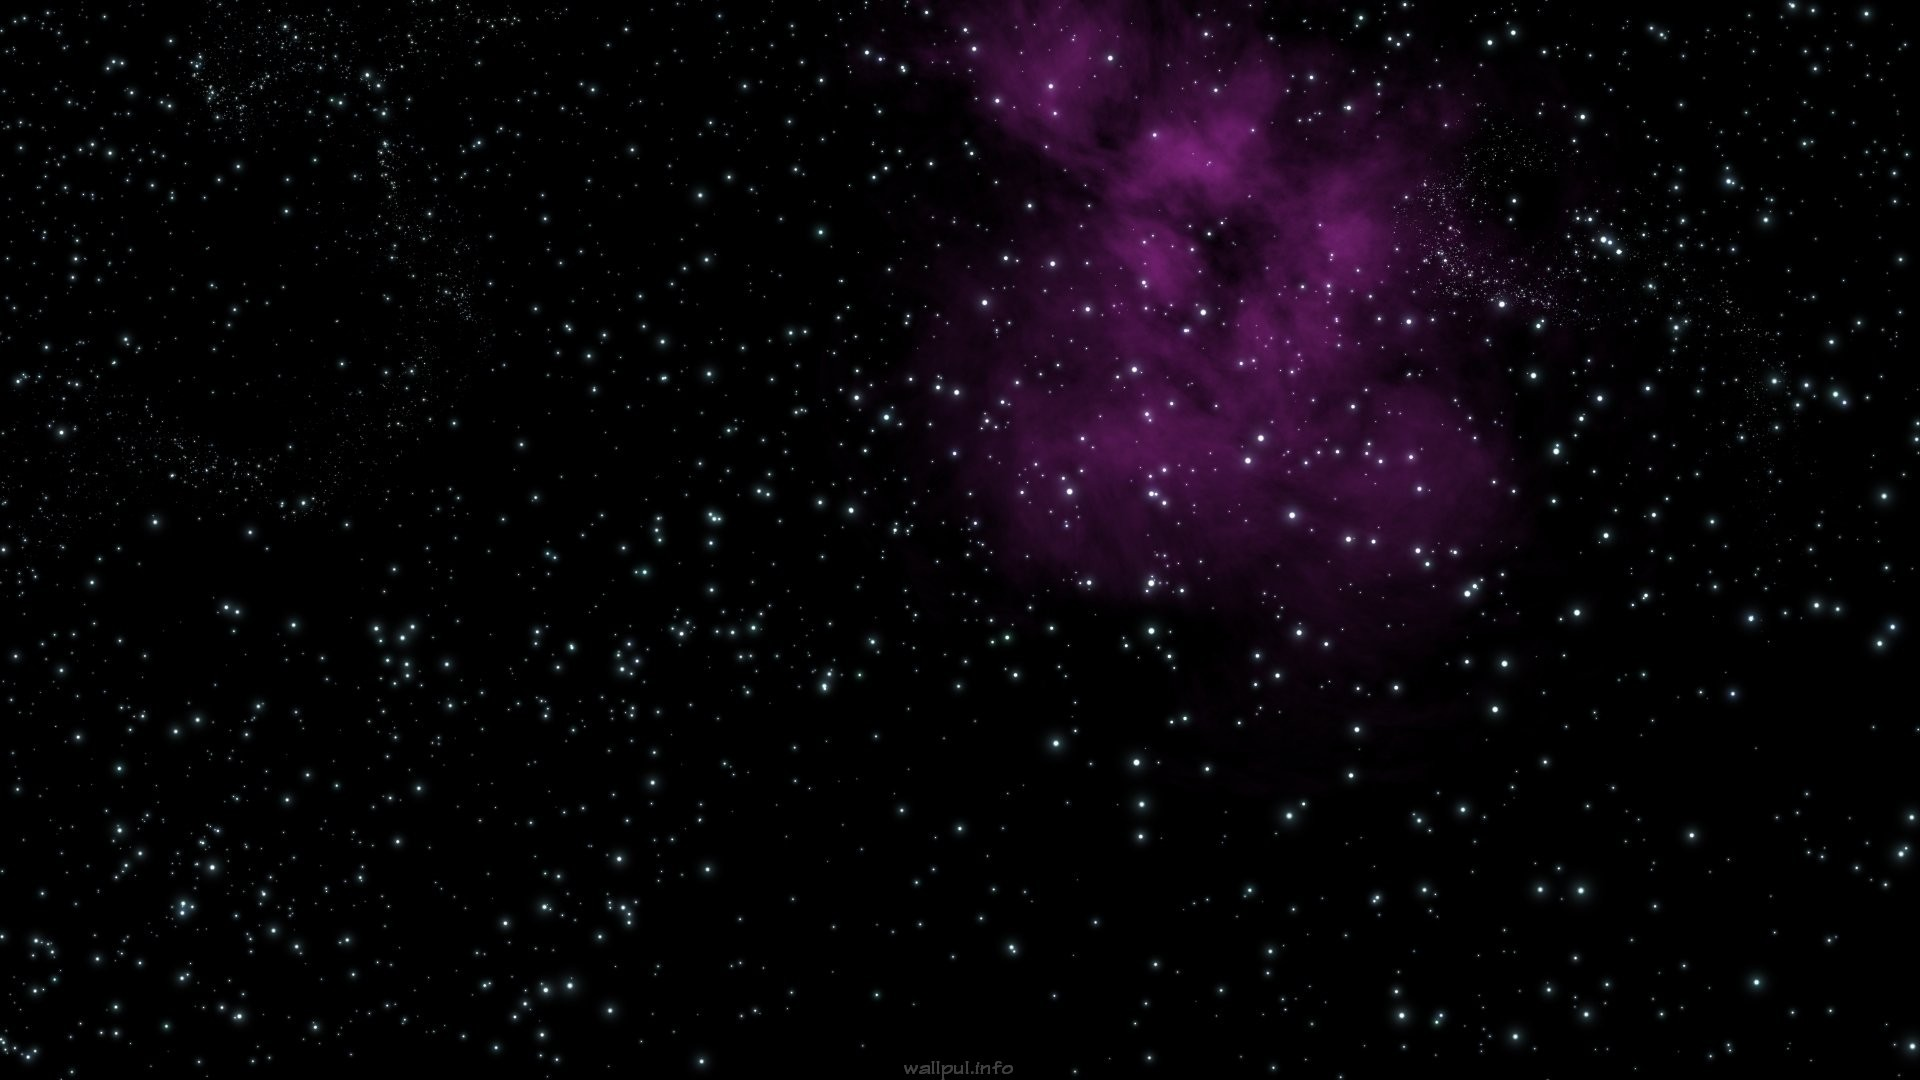 1080x1920 Wallpaper Full Hd 1080 X 1920 Smartphone Vertical Stiped Nebula